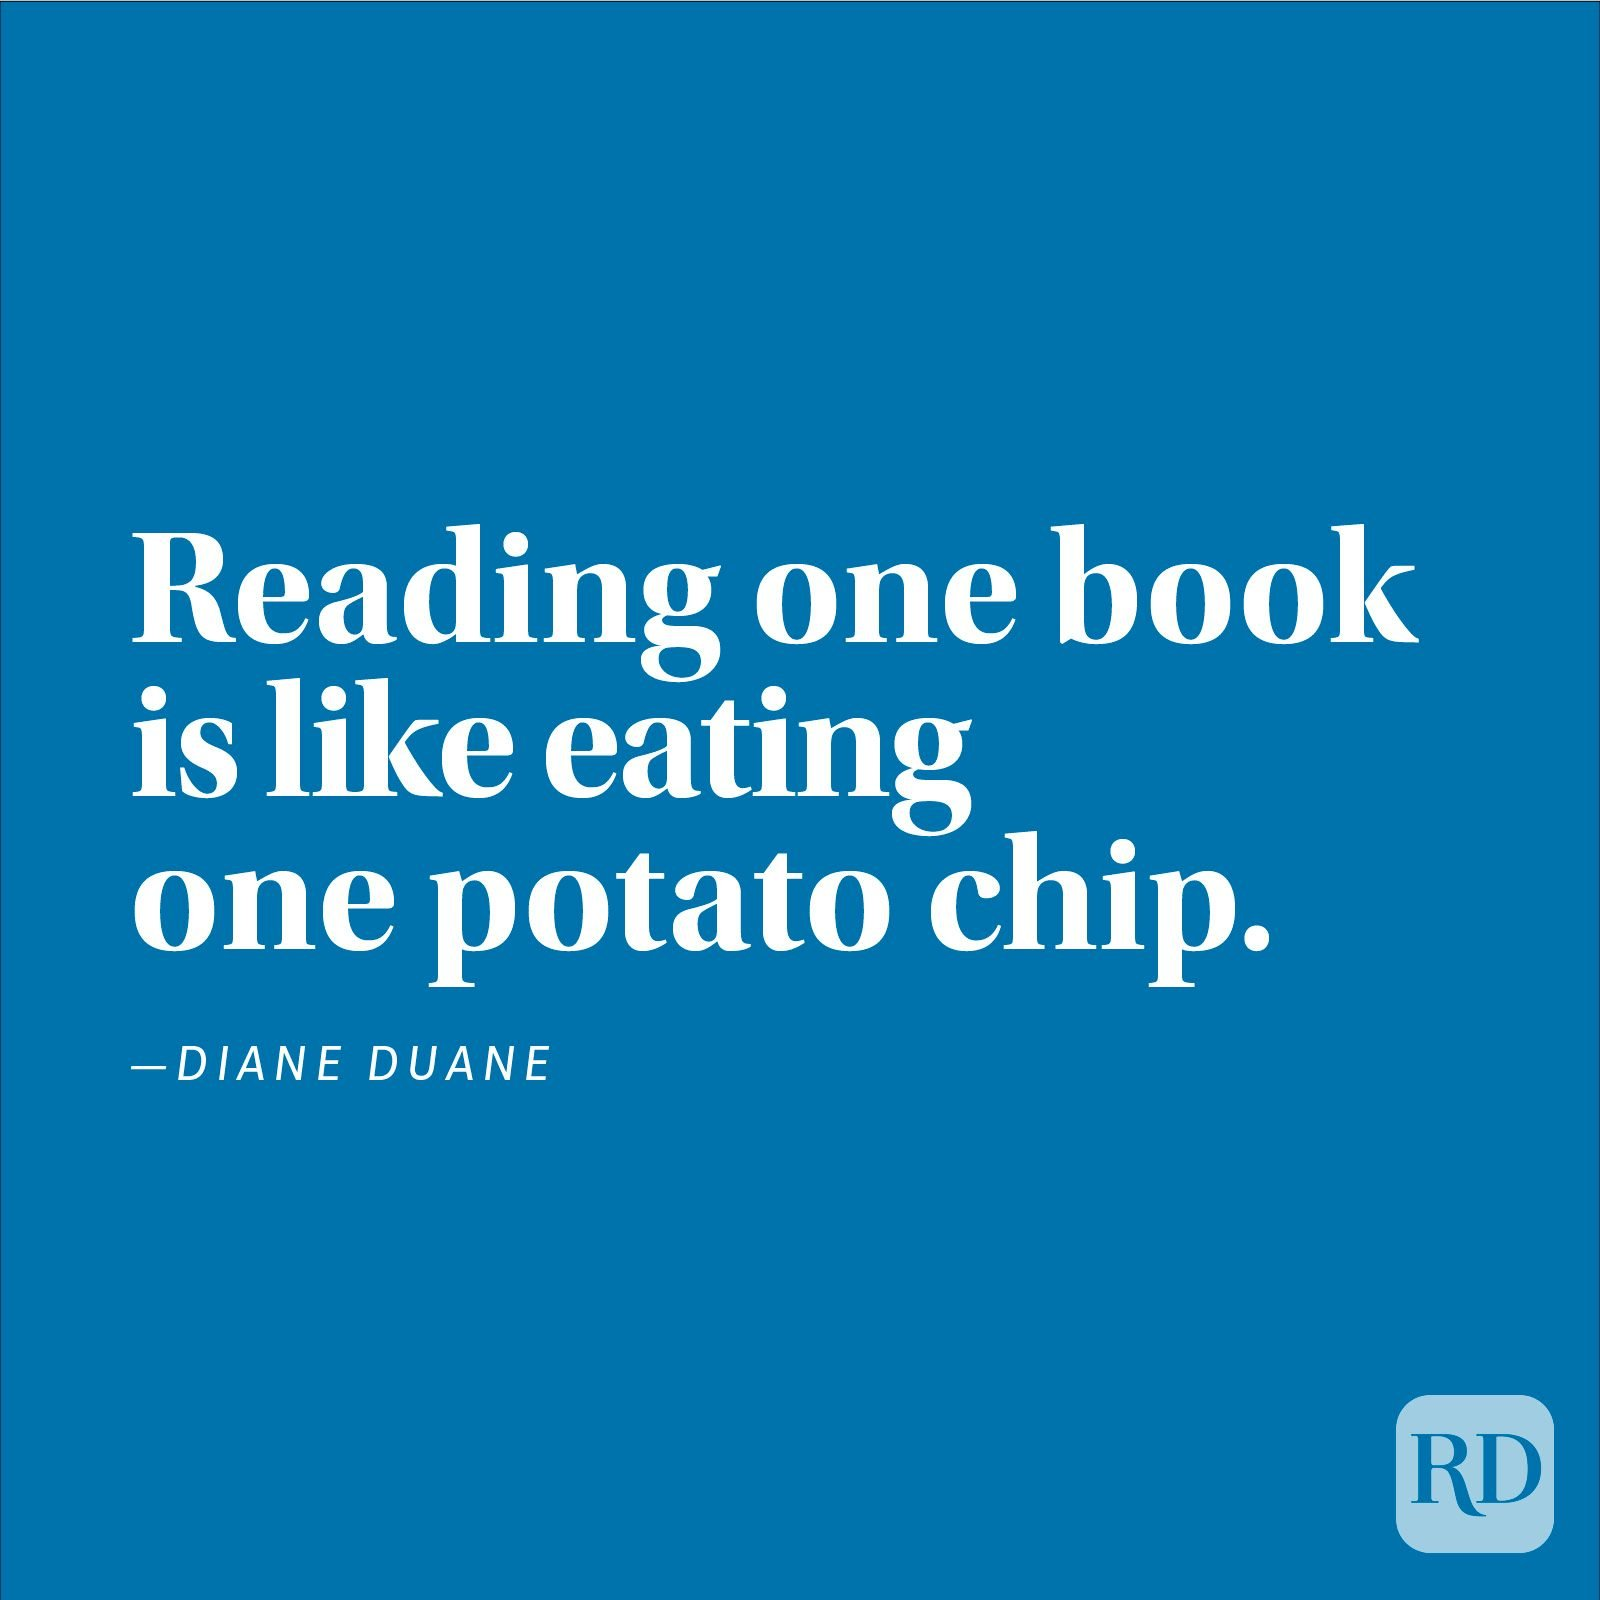 """Reading one book is like eating one potato chip."" —Diane Duane"